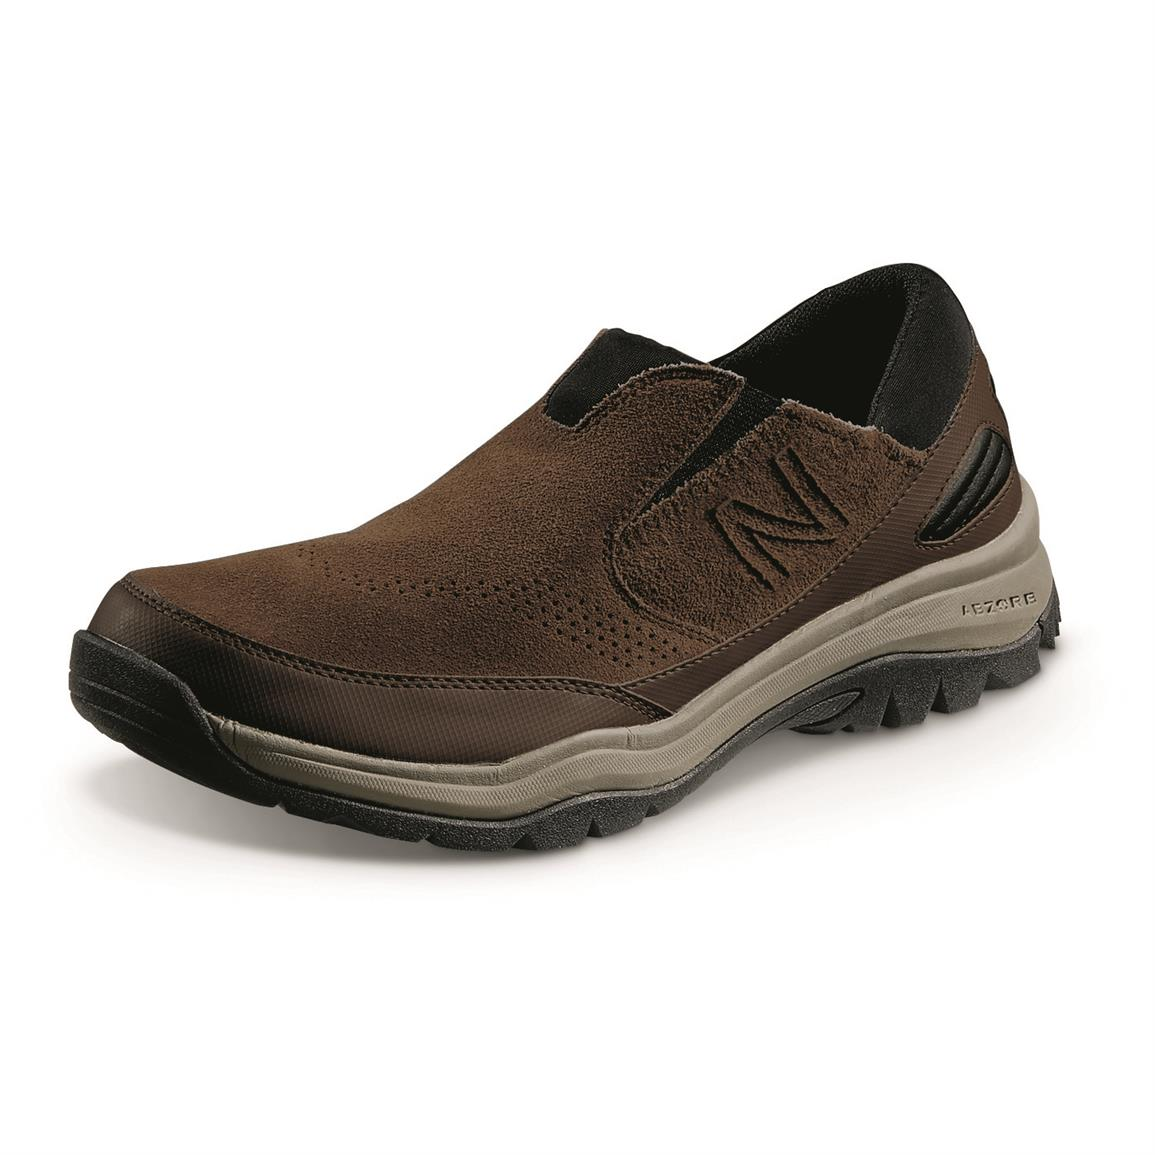 New Balance Men's 770v1 Trail Walking Slip-on Shoes, Brown